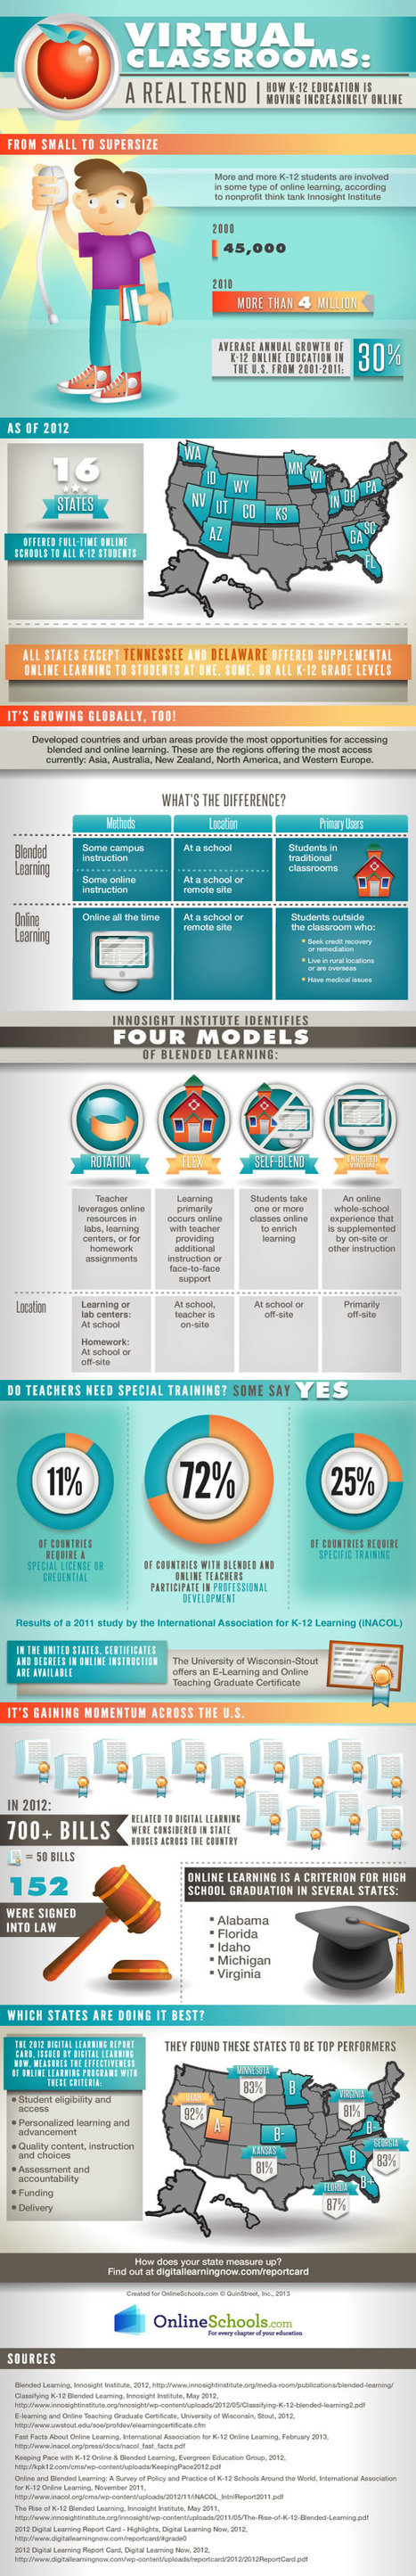 The Teacher's Quick Guide To Blended Learning [Infographic] | #LearningCommons | Scoop.it